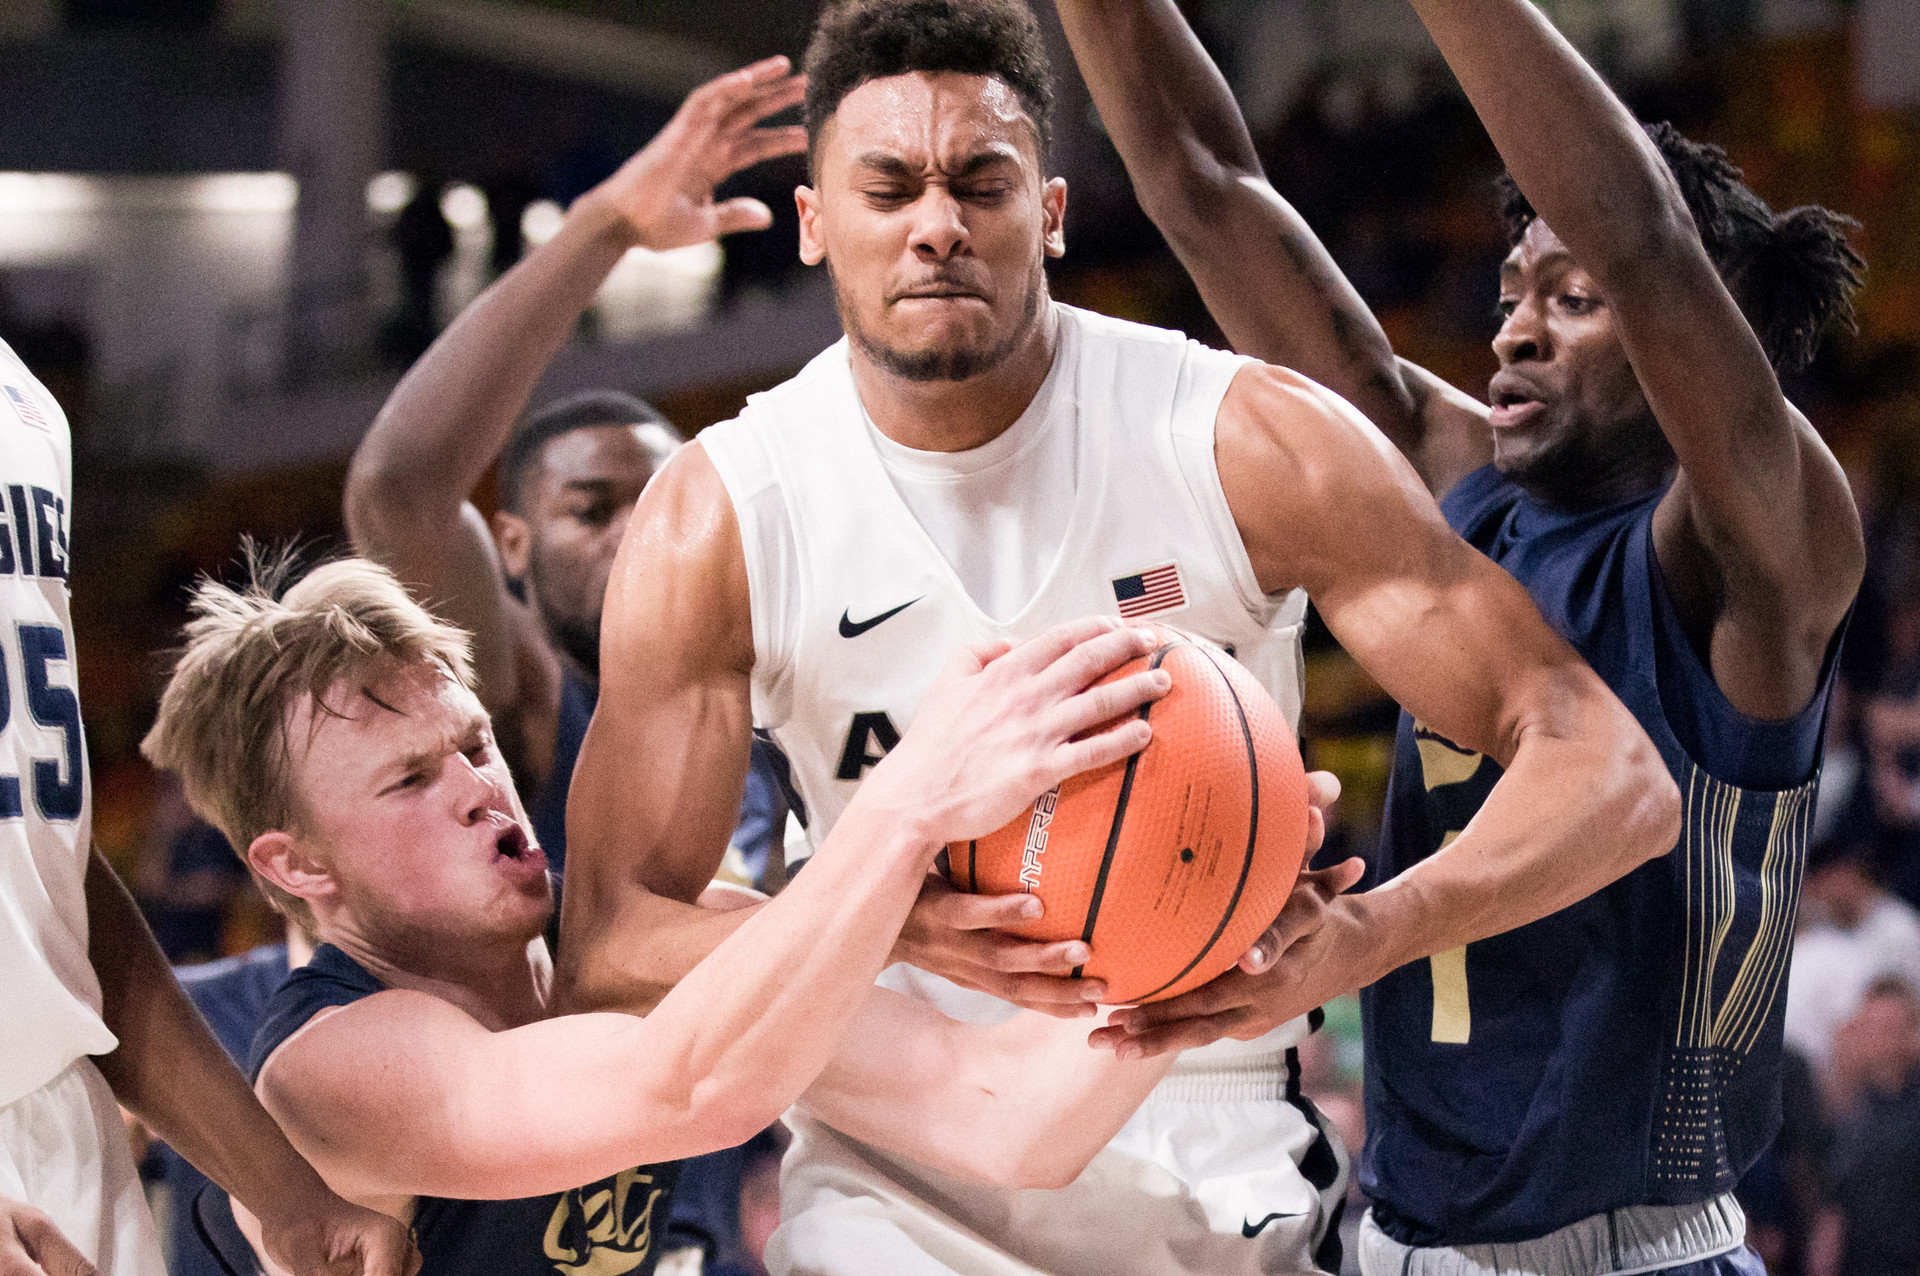 Utah State University's Alex Dargenton fights for control of the ball in the USU vs Montana State University basketball game at the Dee Glen Smith Spectrum in Logan, Utah, on Nov. 13, 2017.